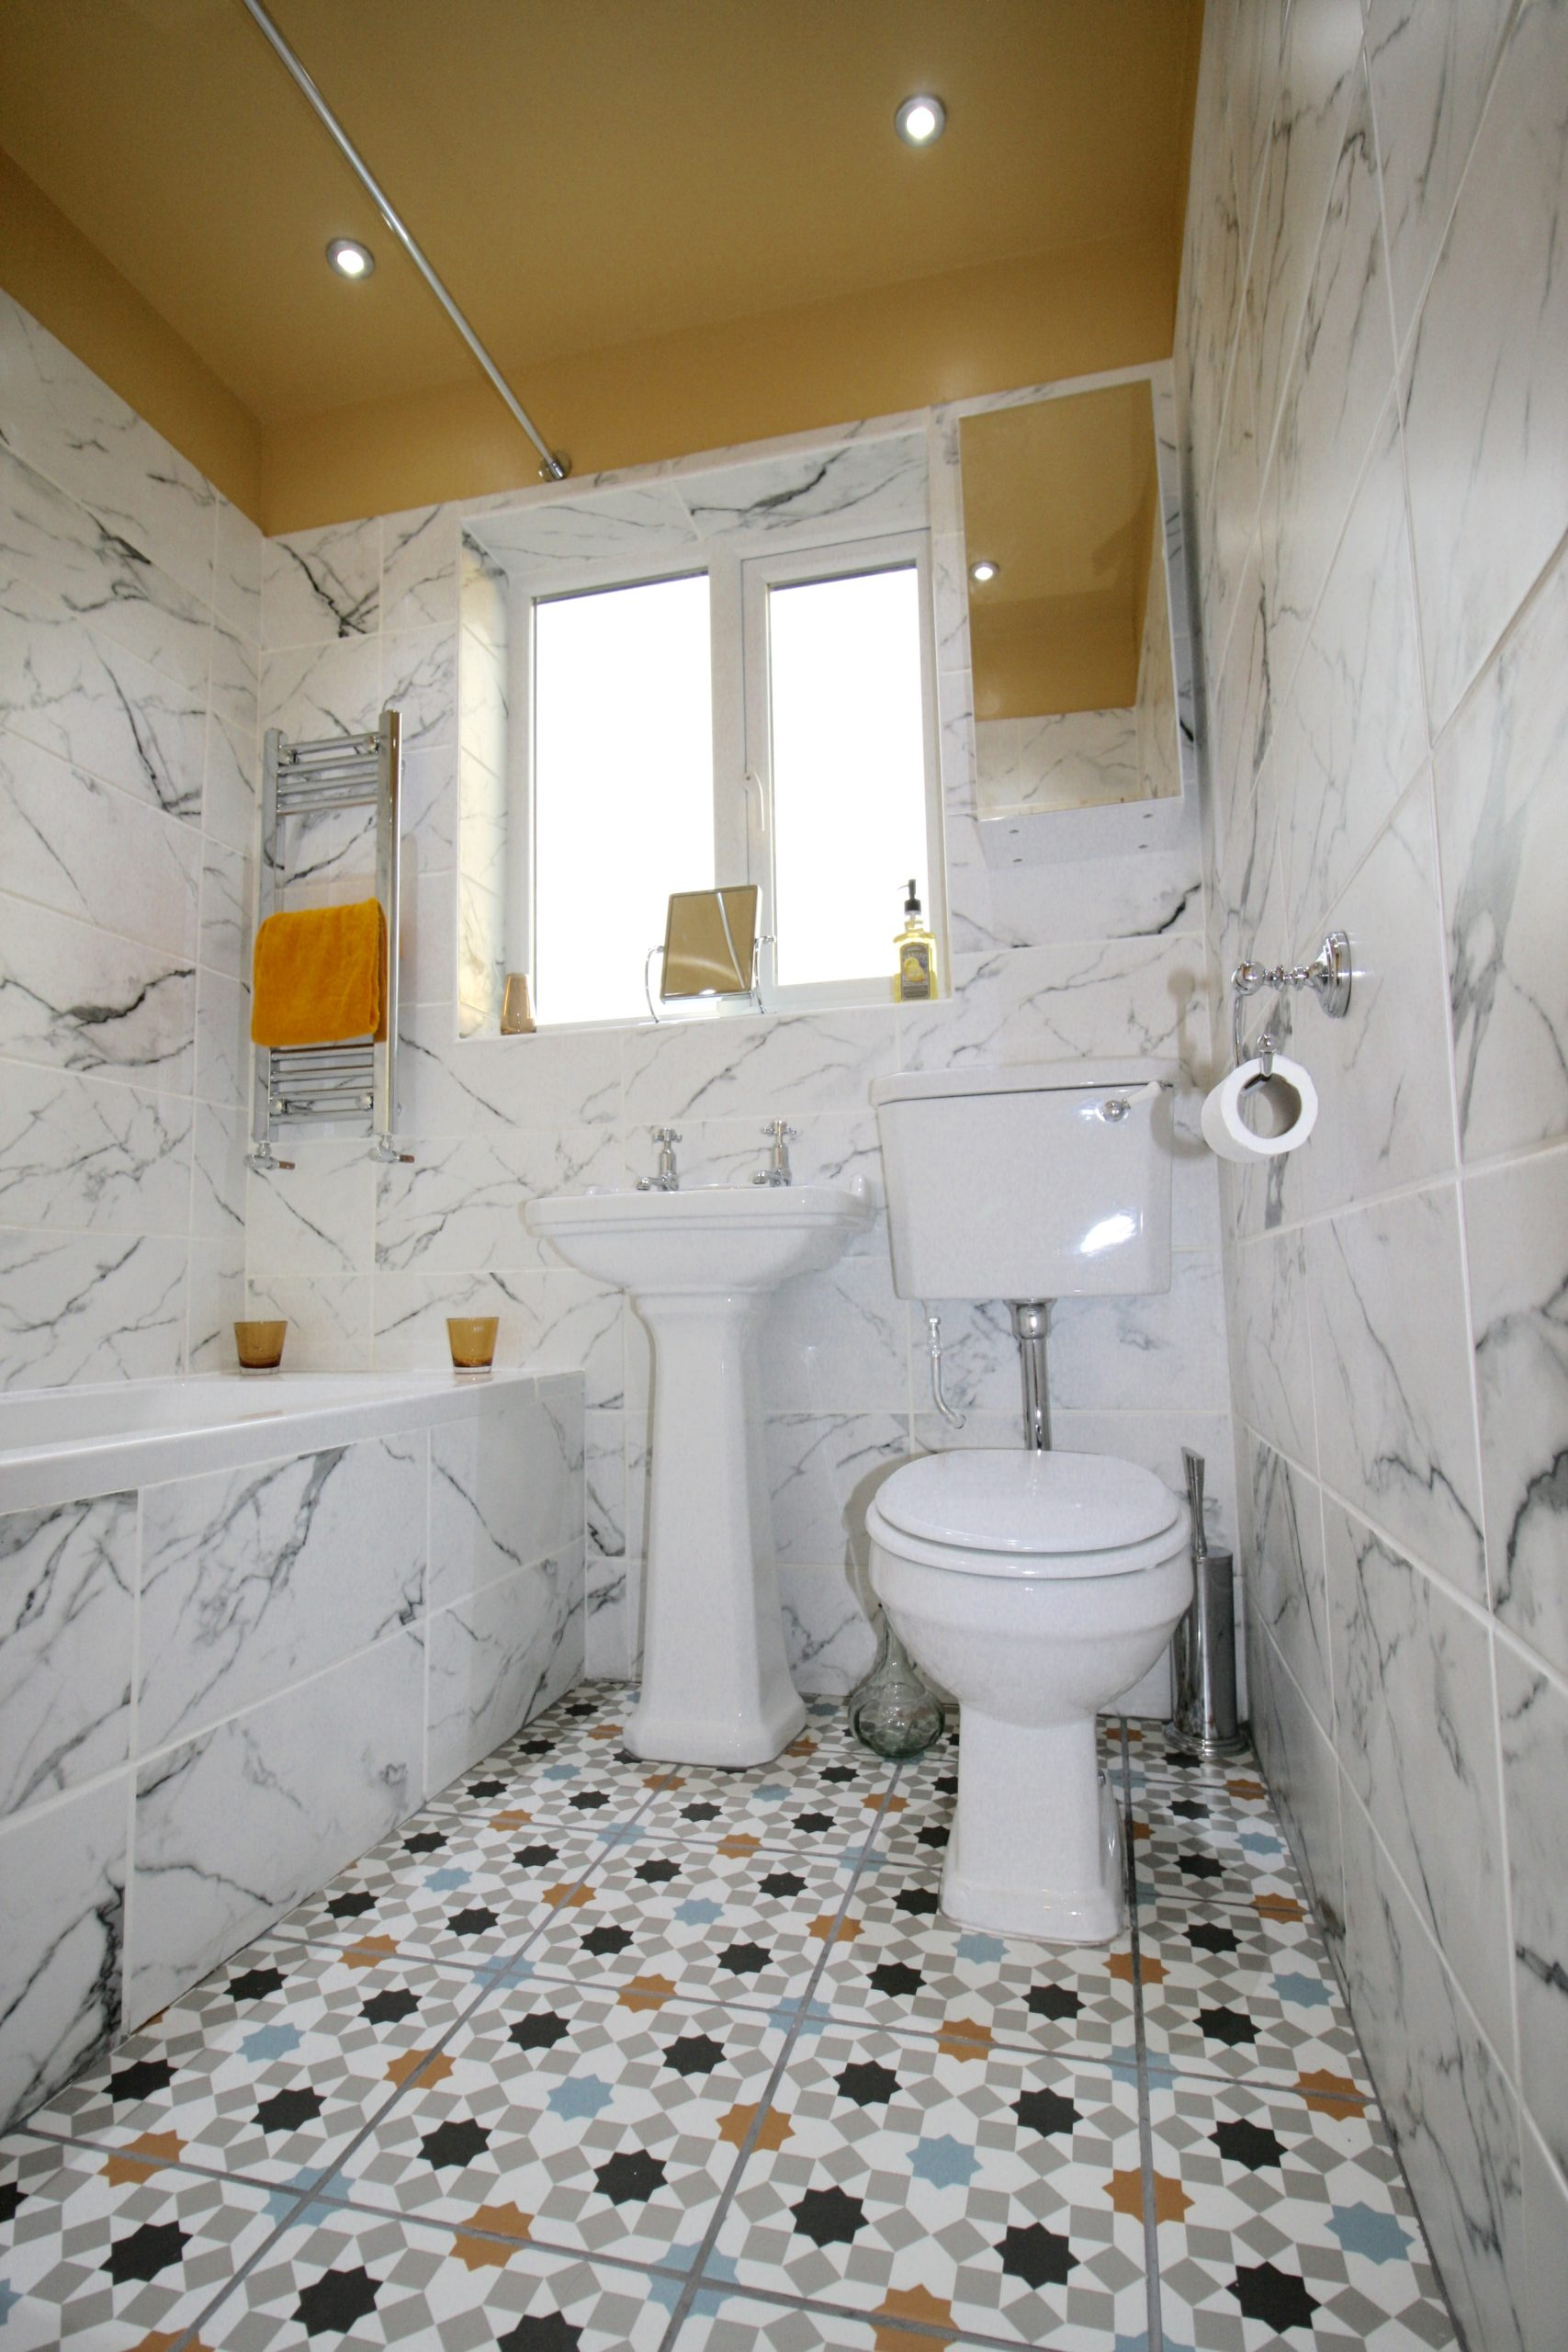 Bathrooms - Bijou bathroom with bold encaustic floor tiles and large marble wall tiles